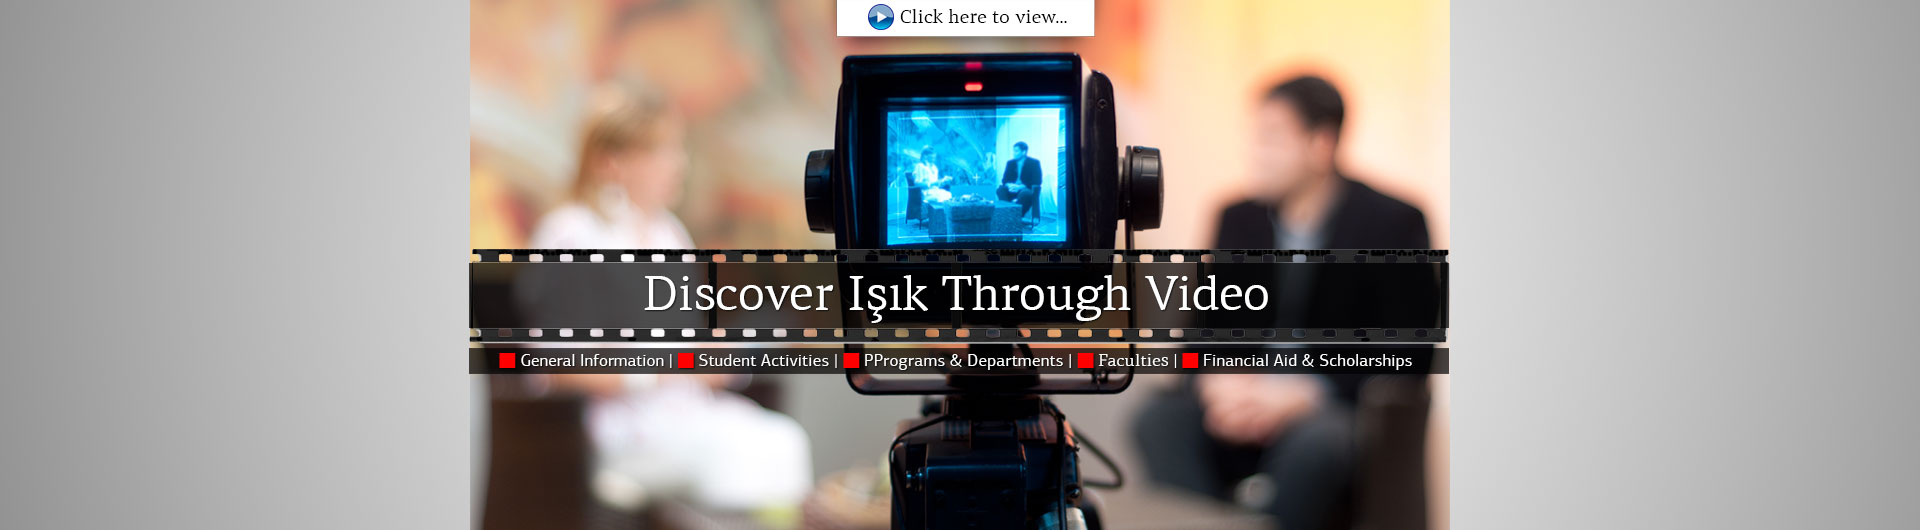 Discover Işık Through Video